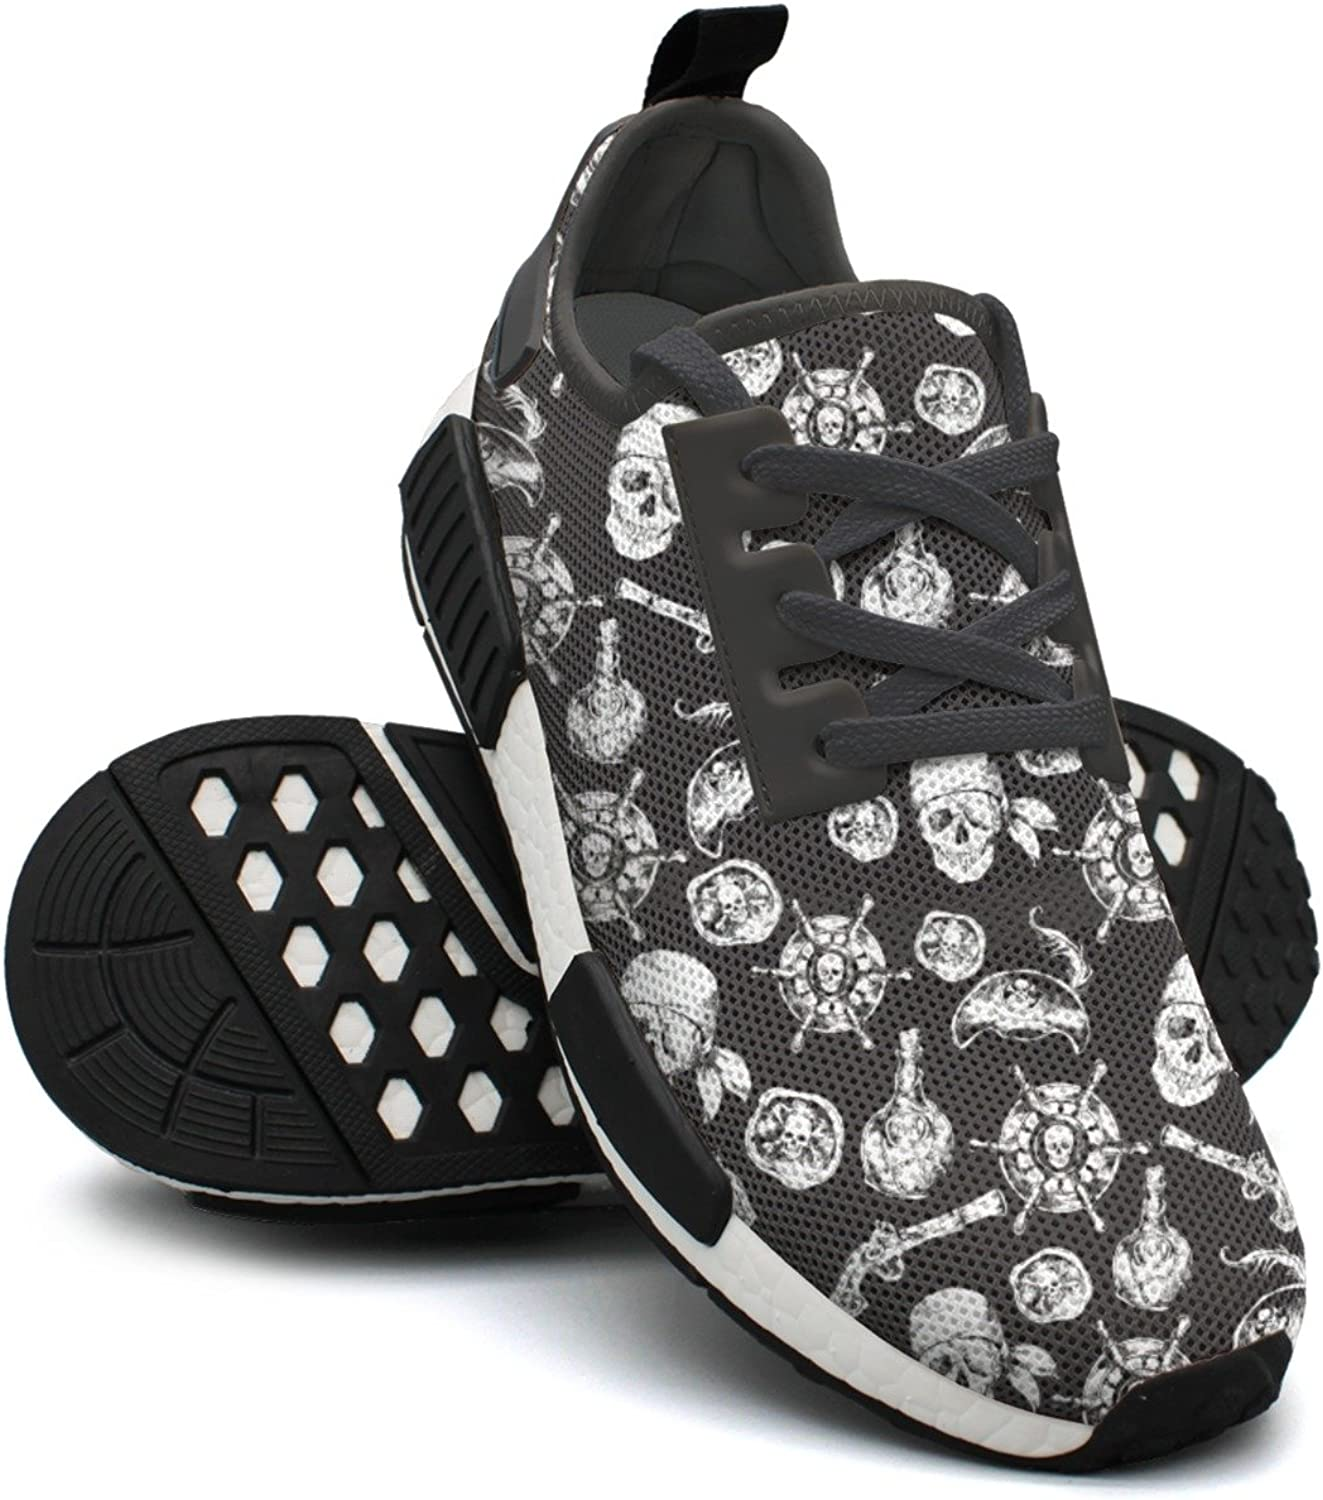 Pirates Skulls Black and White Women's Navy Lightweight Sneaker Gym Outdoor Running shoes